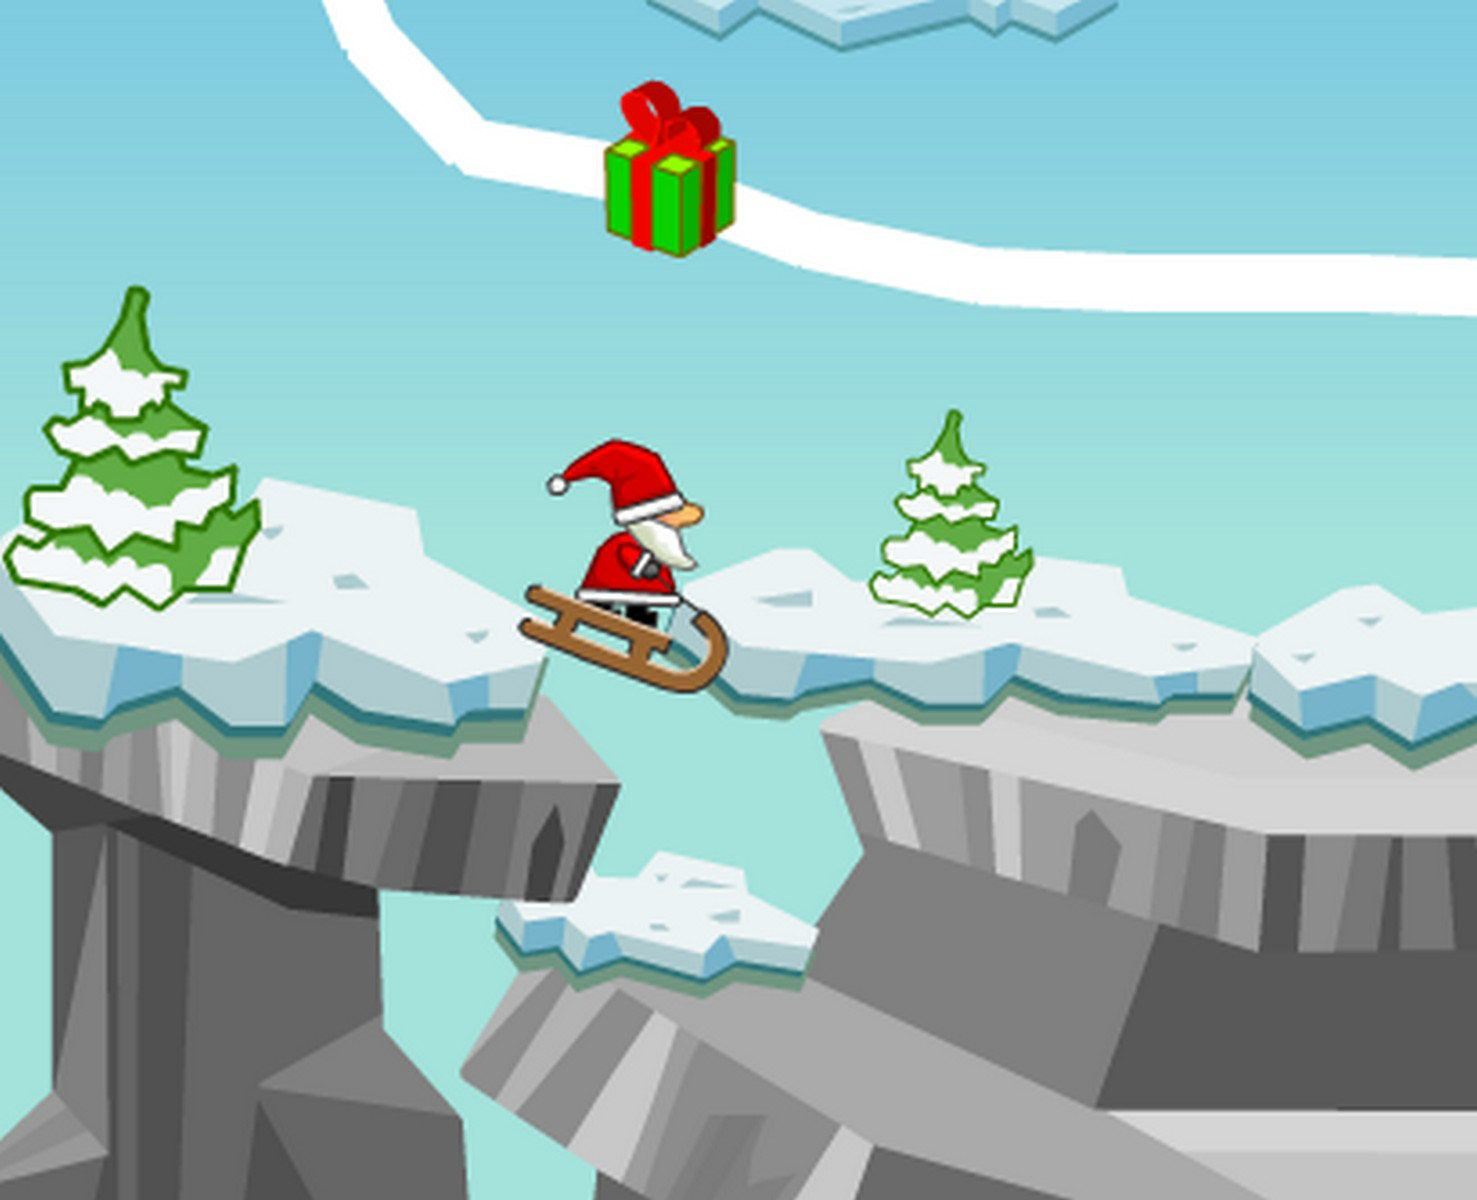 Snow Line Play free games, Free game sites, Games